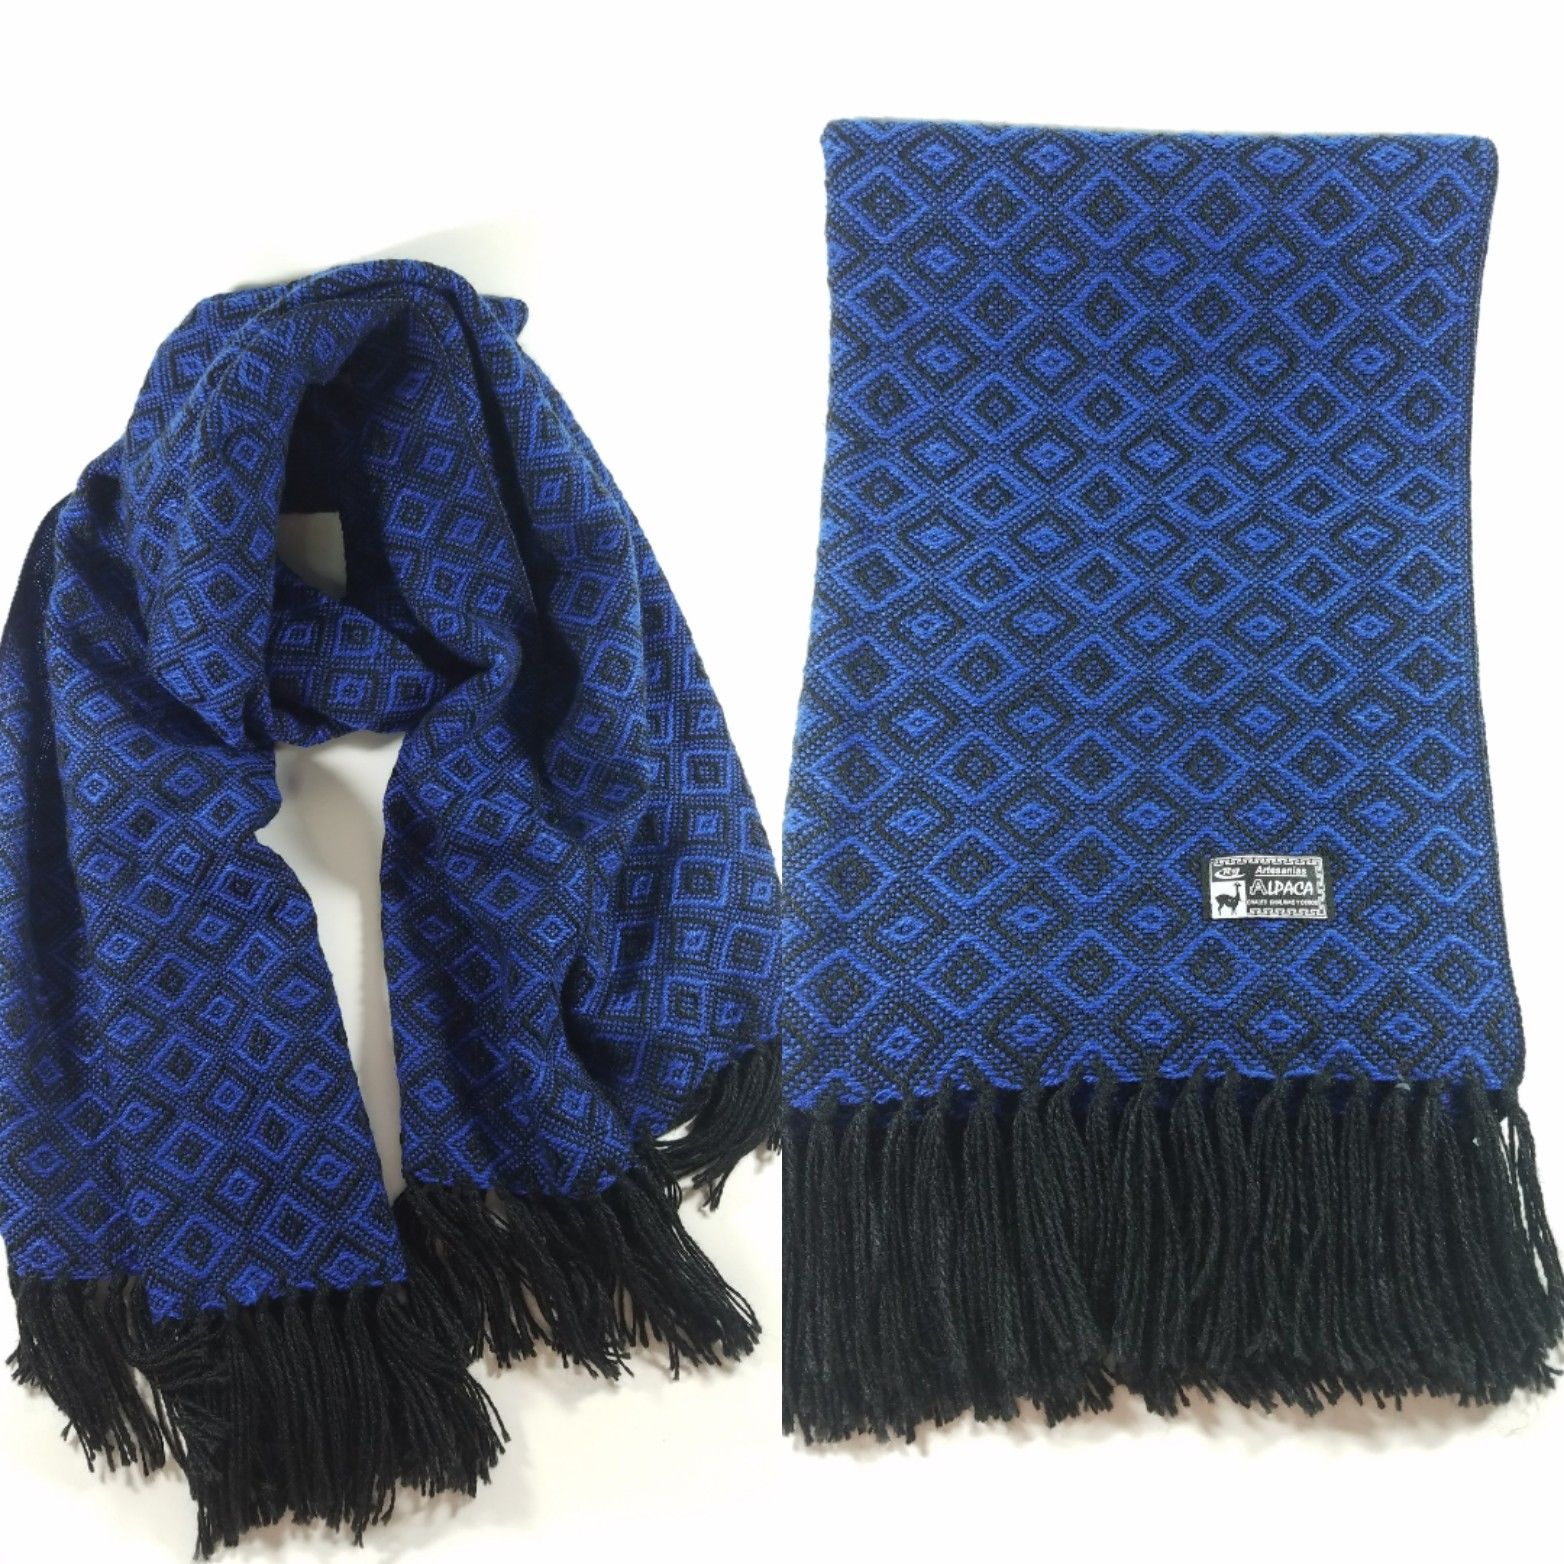 Alpaca Scarves - Elegant, Beautiful, Authentic, Soft & Made In Peru - Clothing, Shoes & Accessories:Women's Accessories:Scarves & Wraps - Terra Blossom